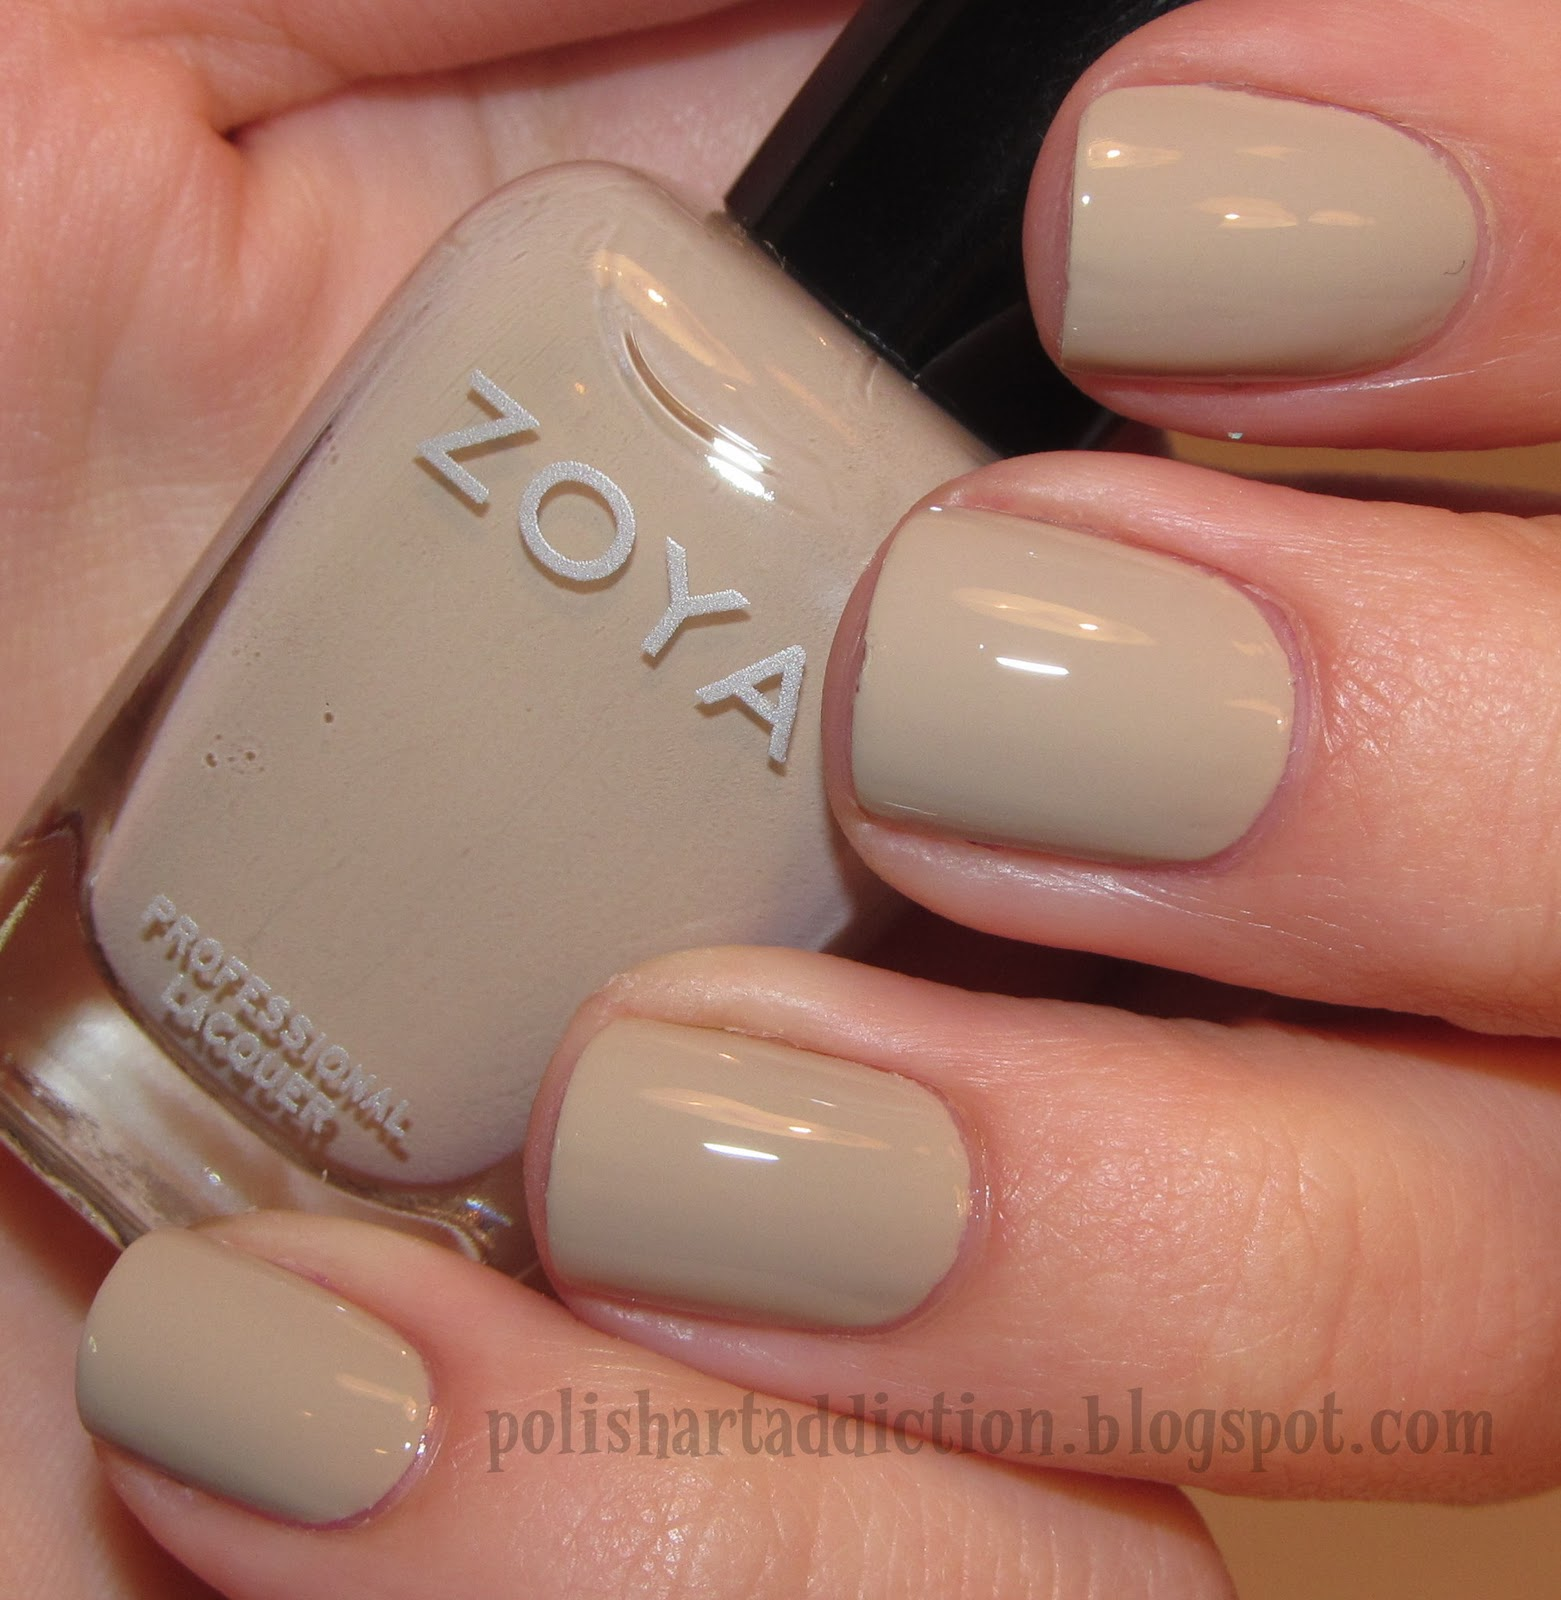 Zoya True Collection